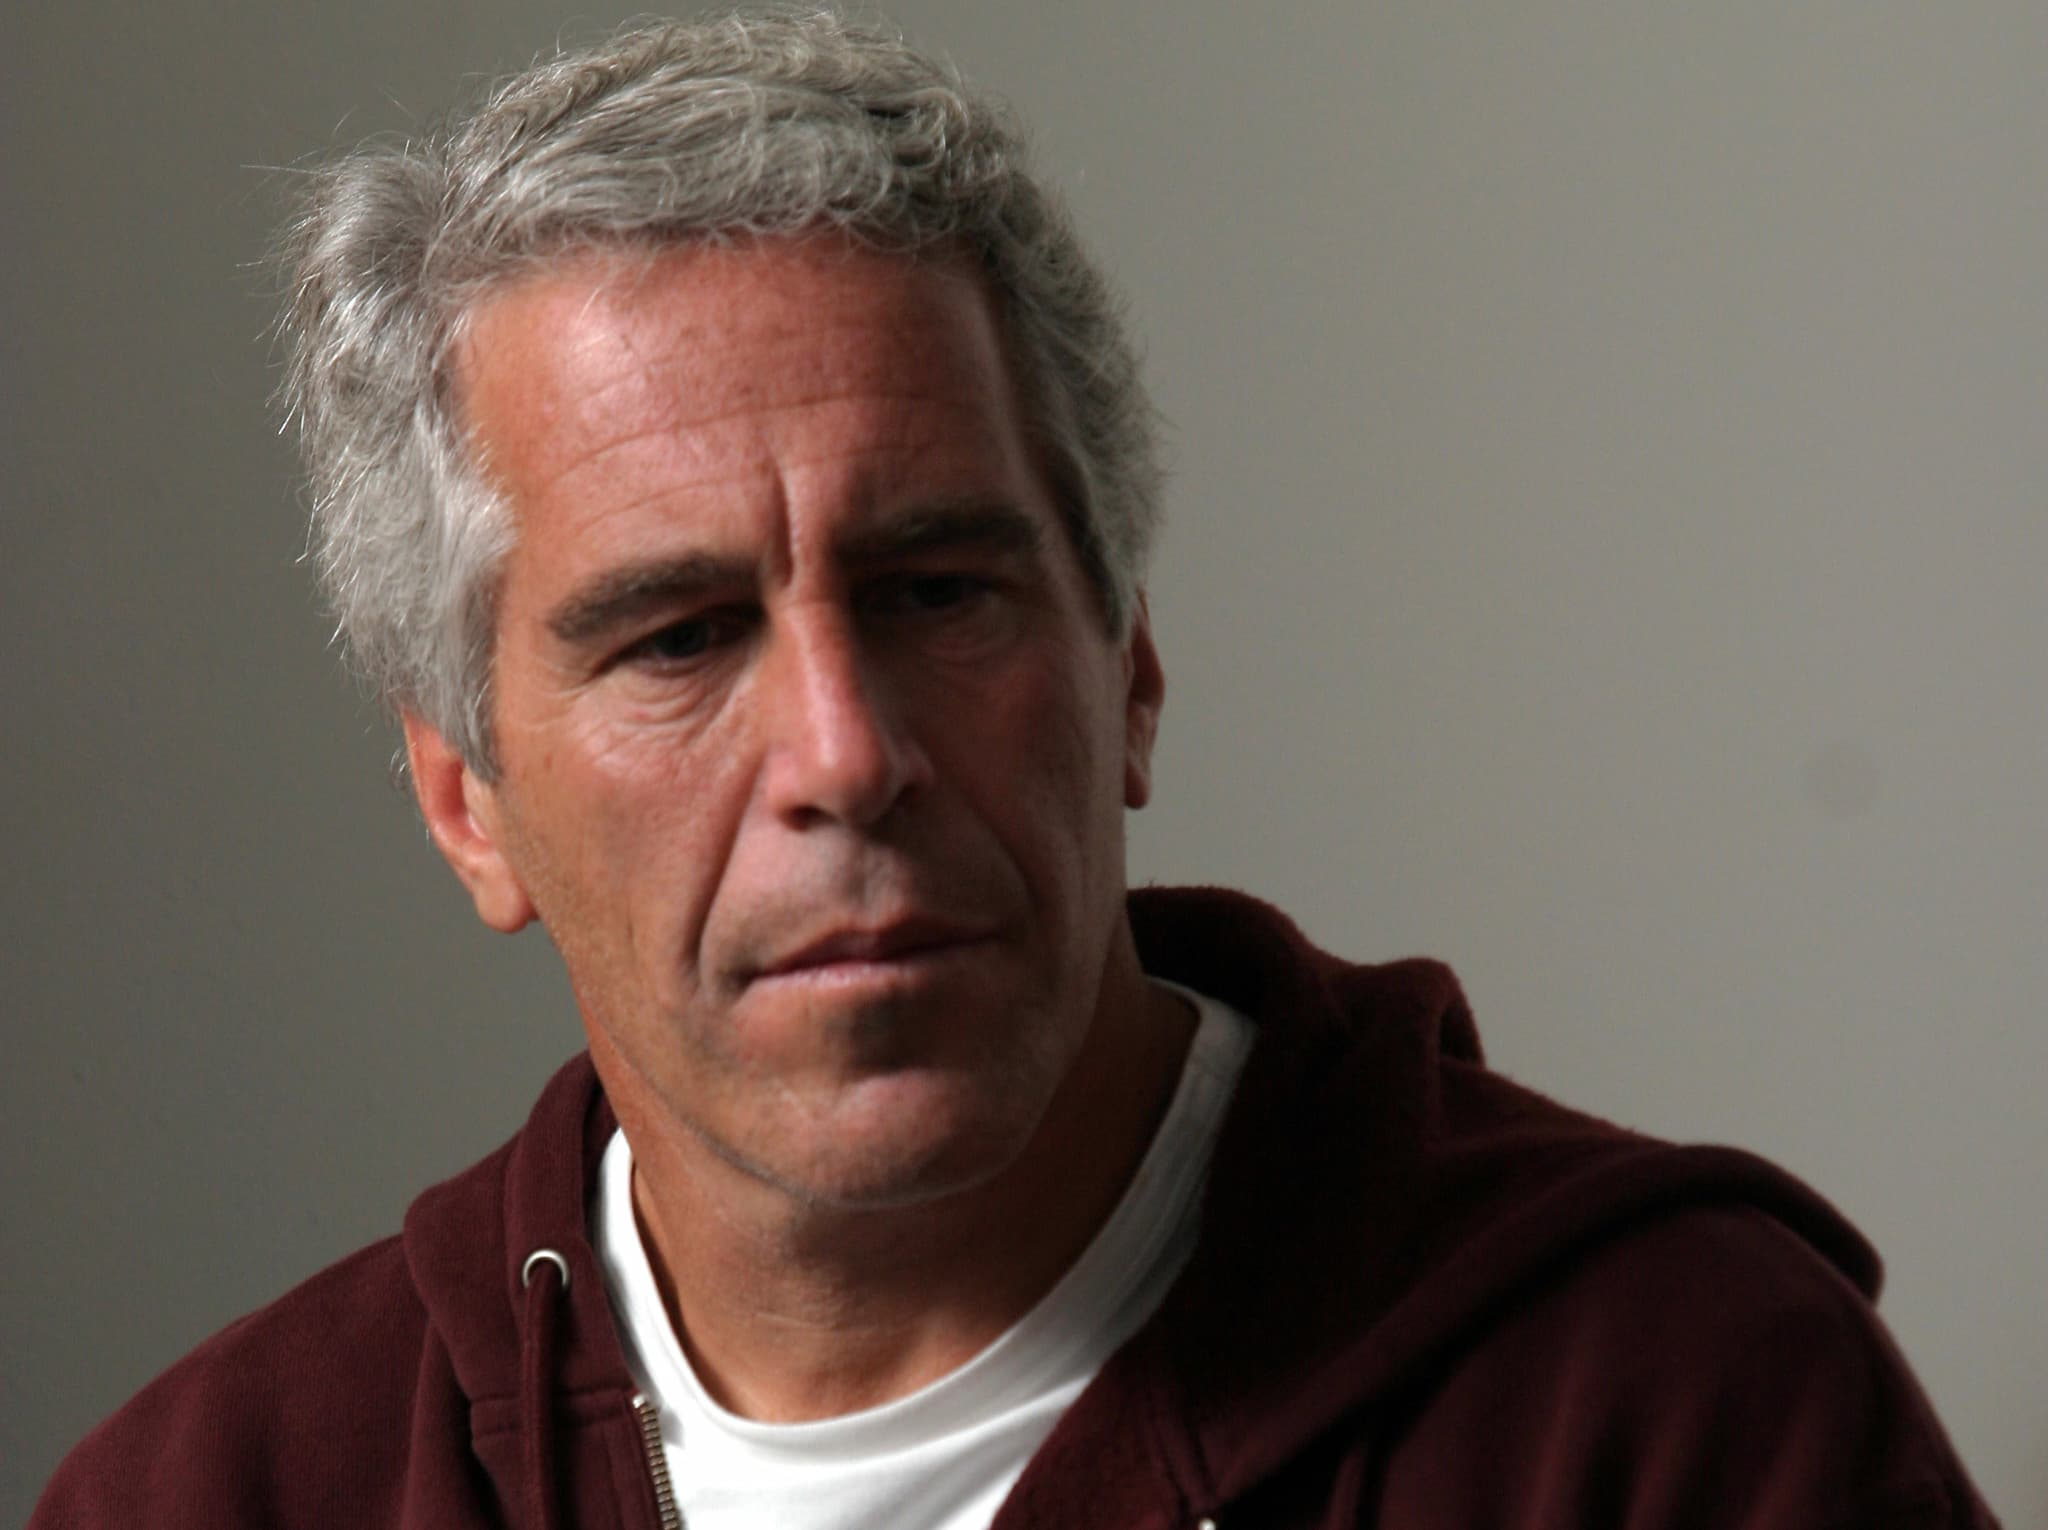 Democratic fundraising committees decline to say whether they will donate or give back Jeffrey Epstein contributions